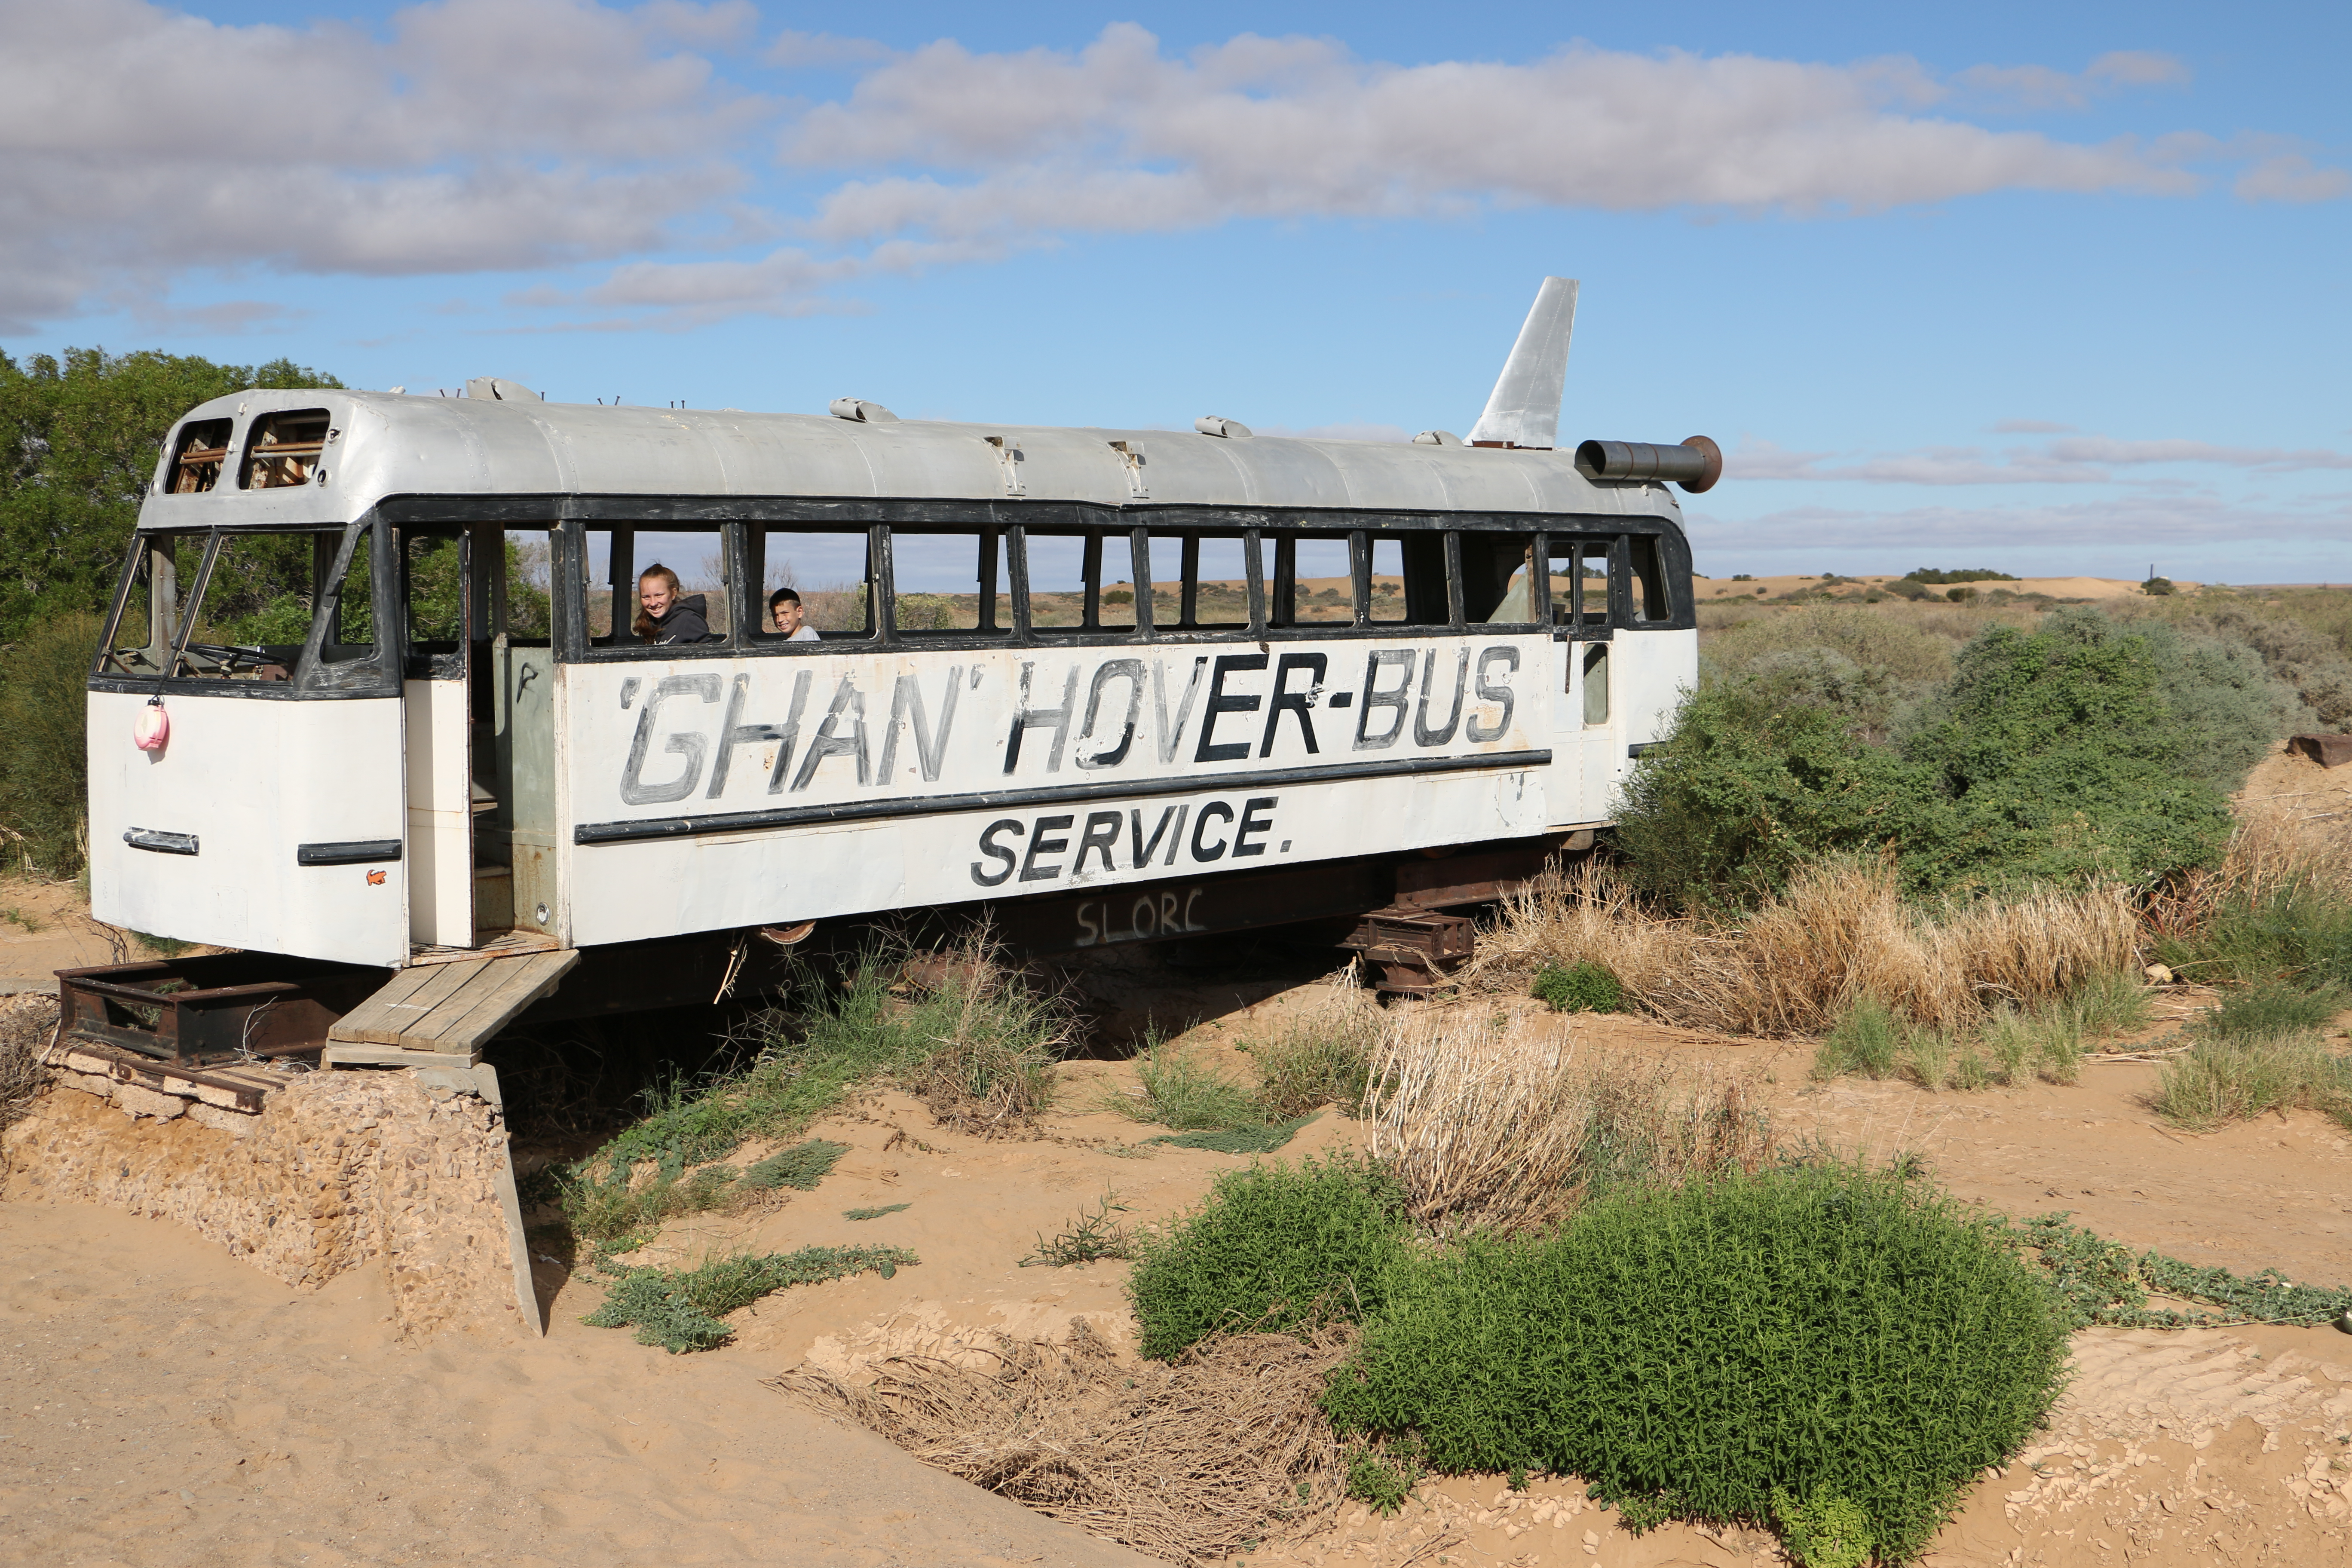 Ghan Hover-bus